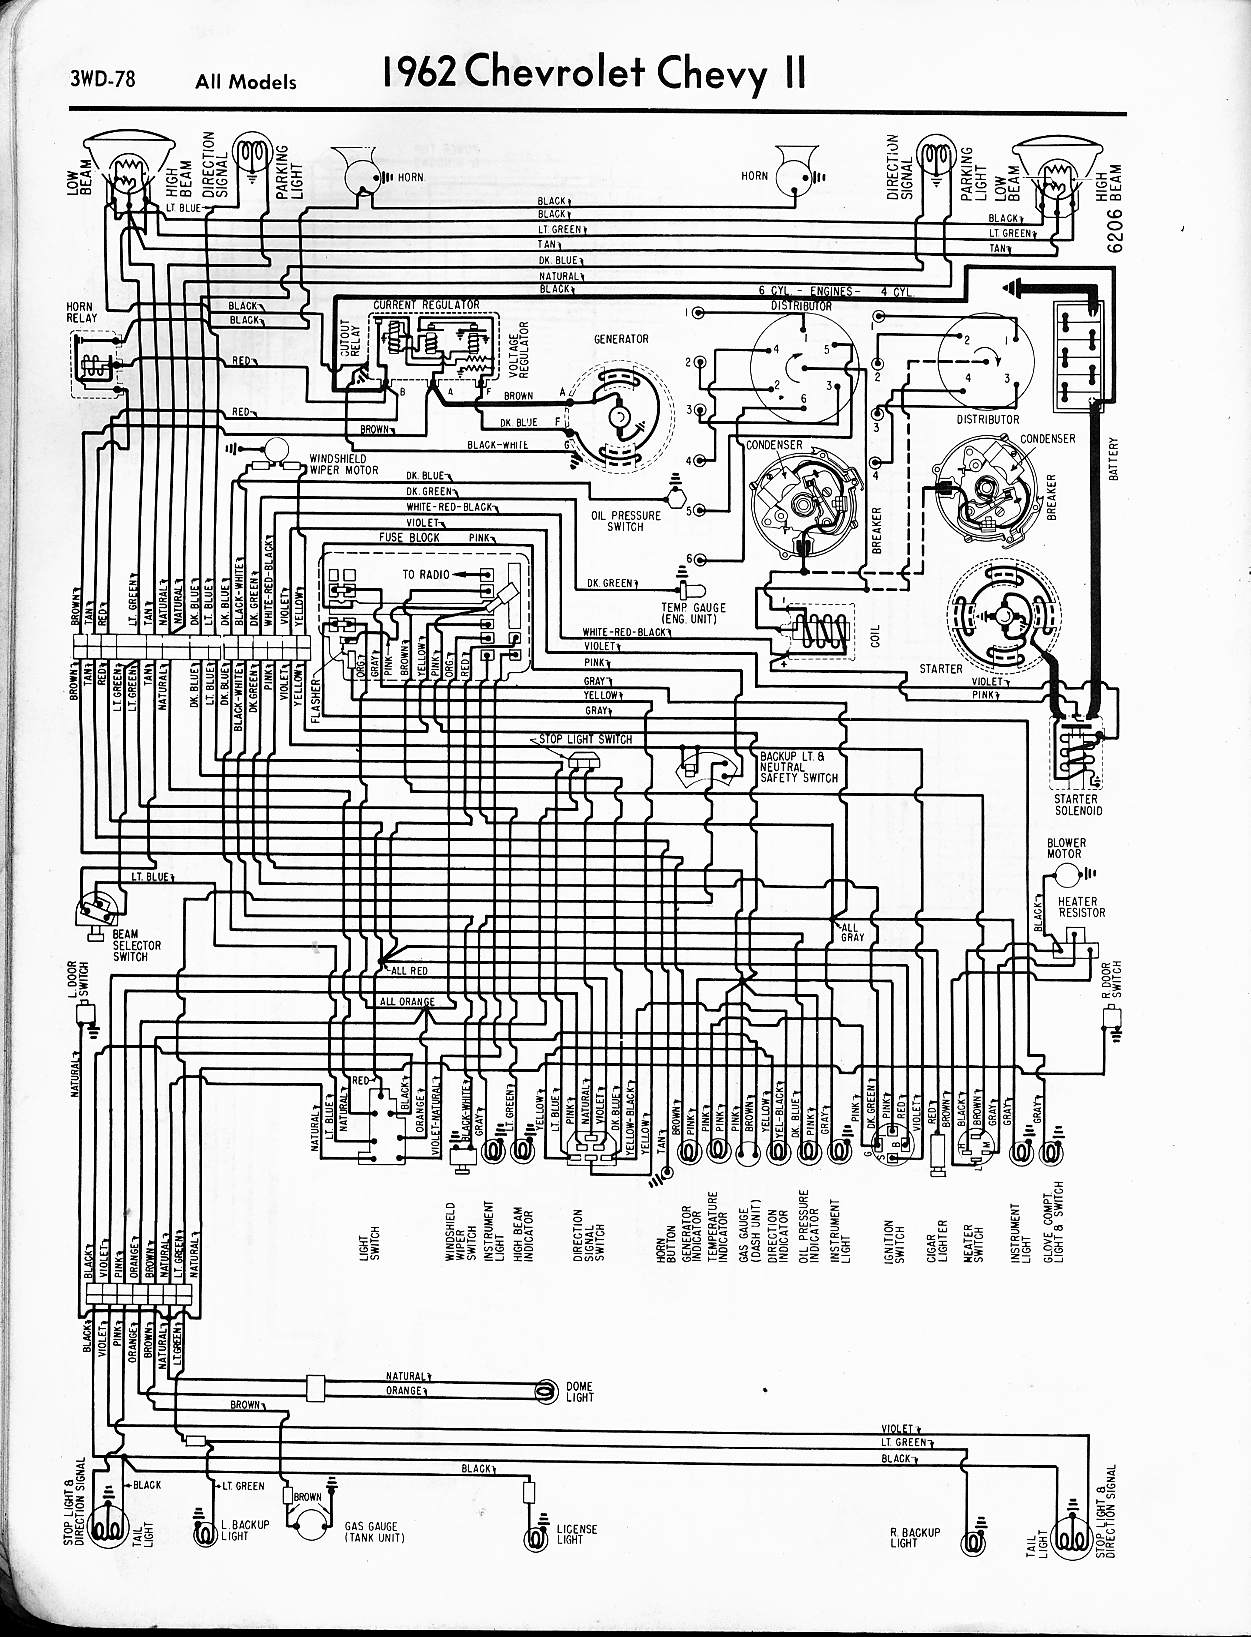 MWireChev62_3WD 078 1963 c10 pickup wiring diagram pdf chevy wiring diagrams \u2022 free 67 Chevy 2 Nova at sewacar.co